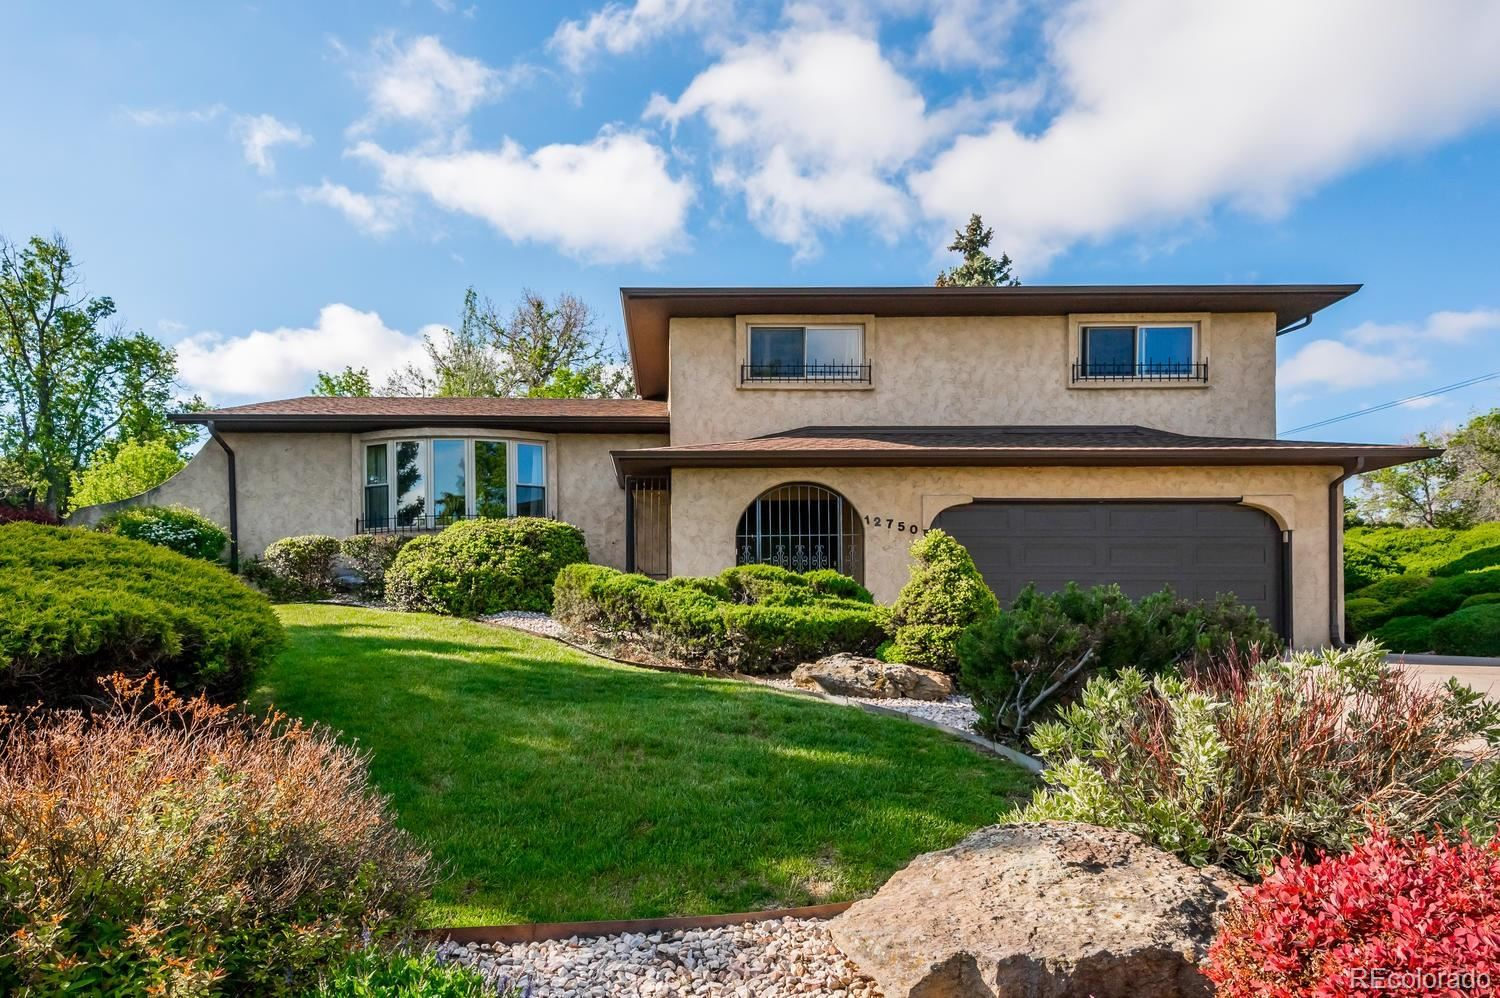 12750 W 16th Place, Lakewood, CO 80215 - #: 2096900